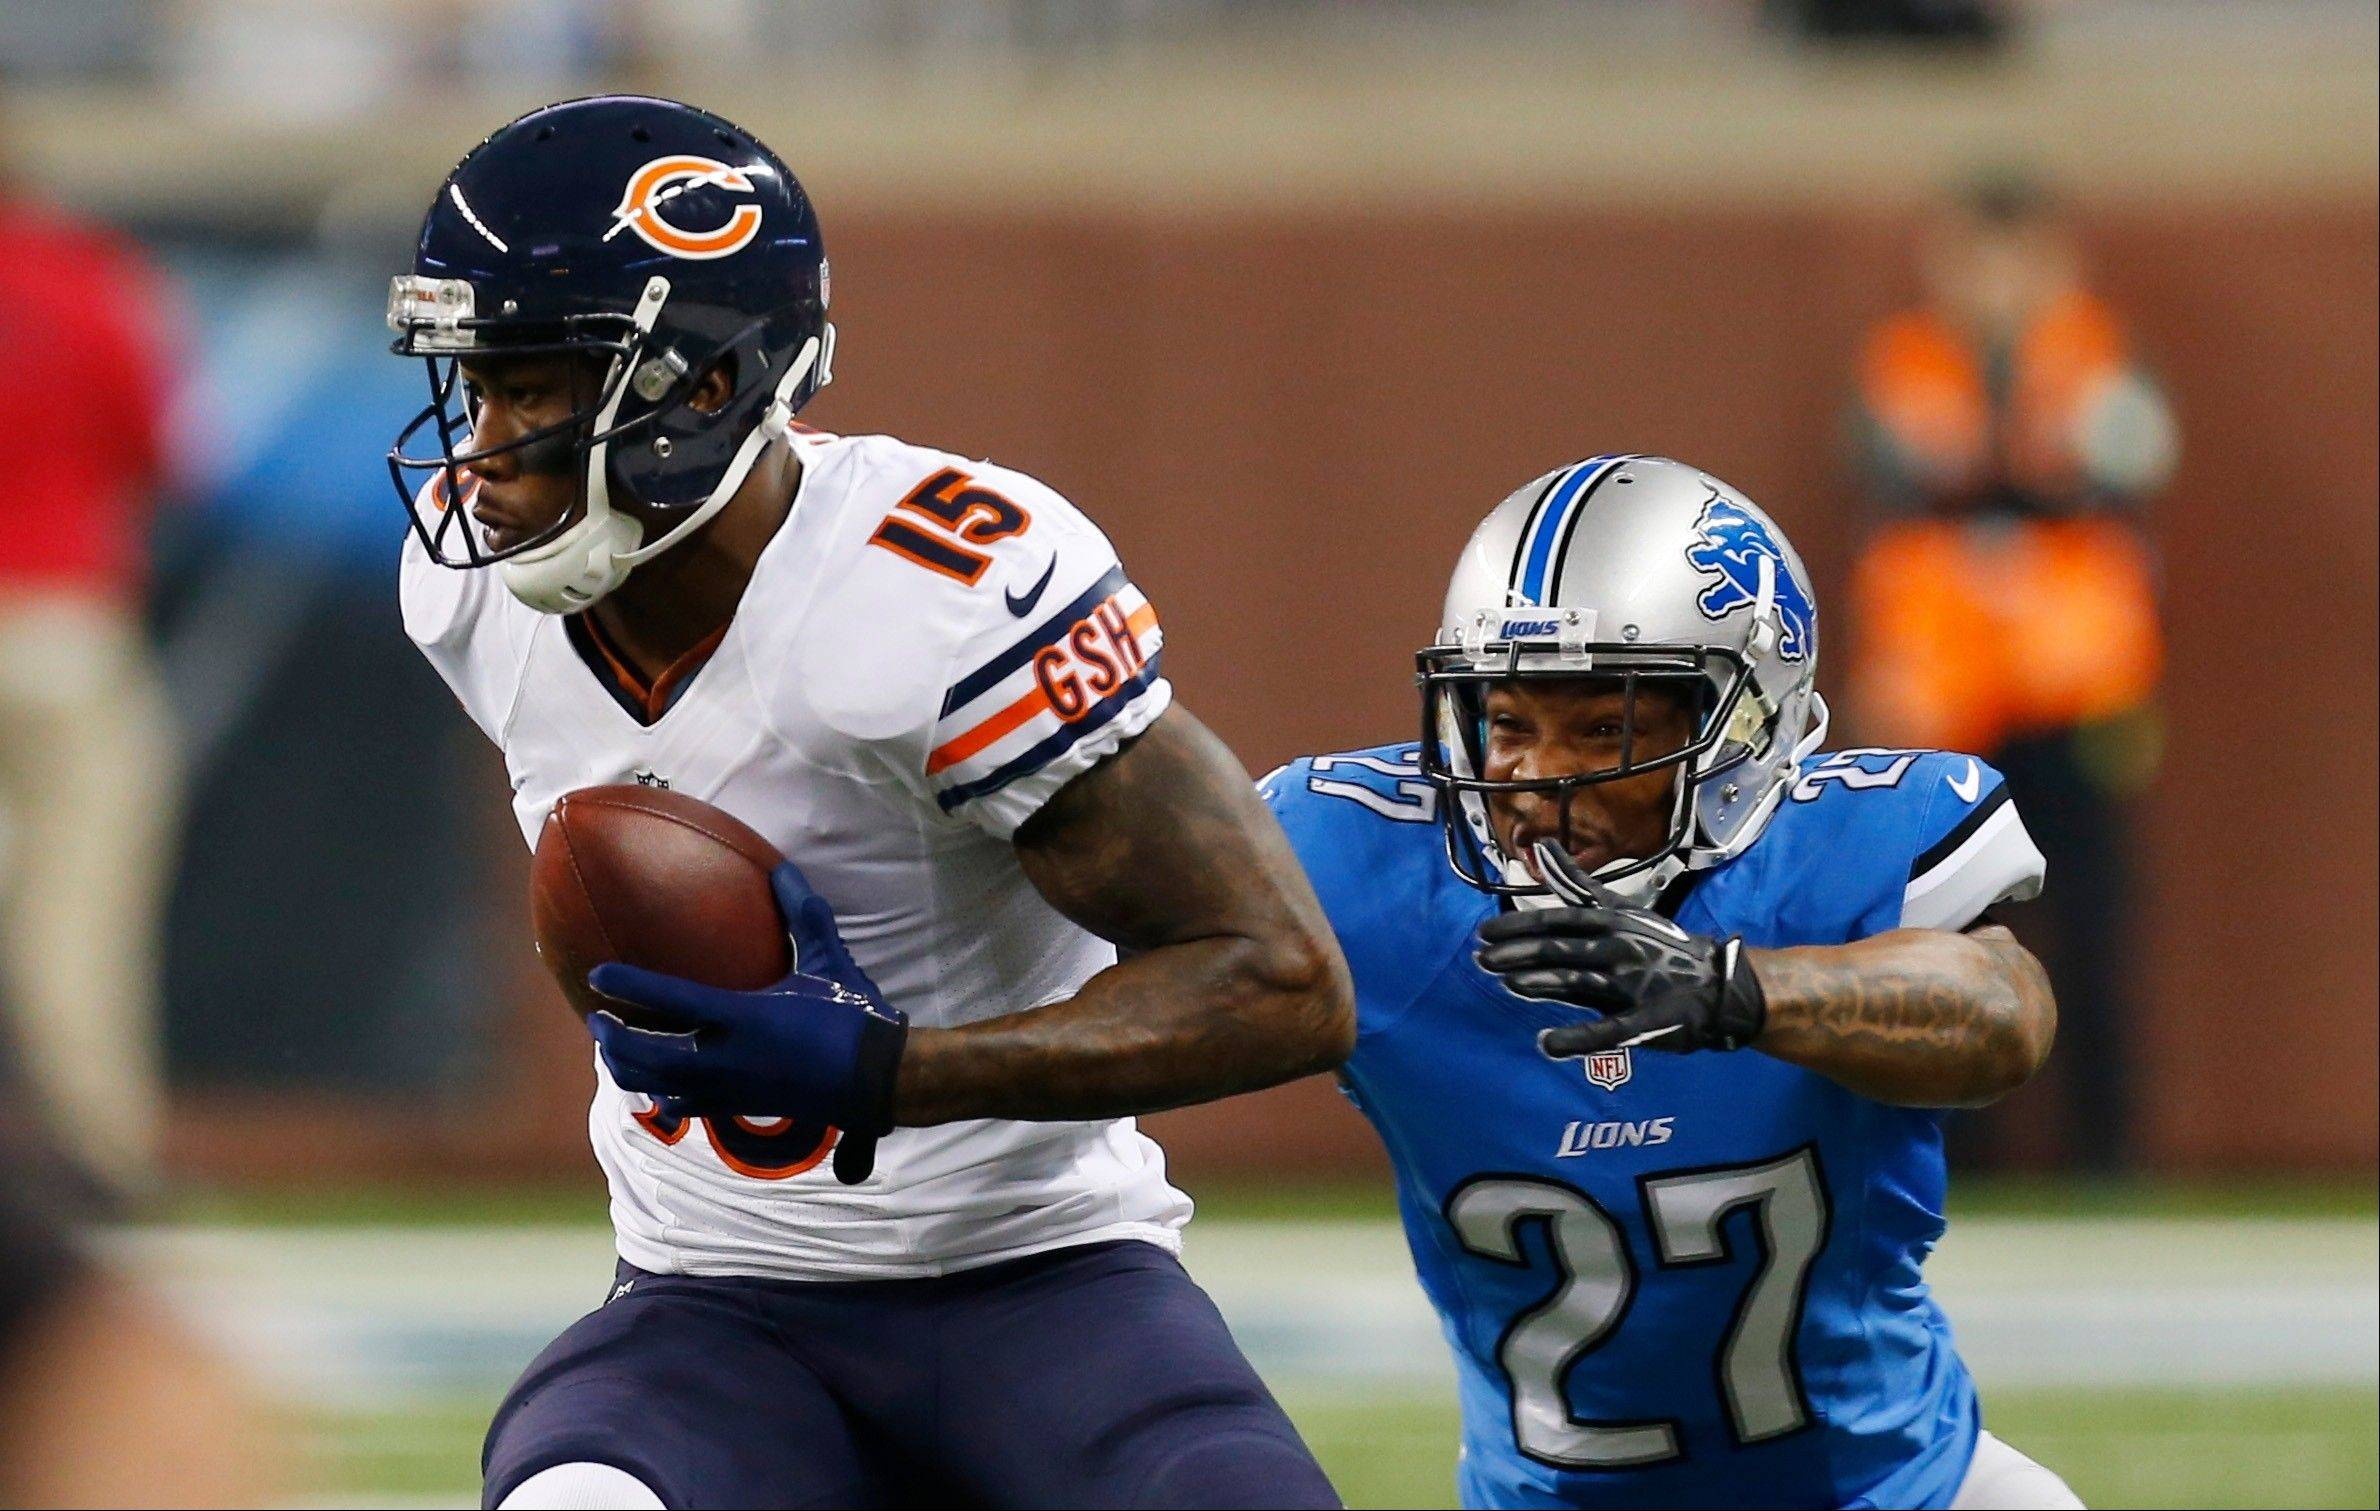 Chicago Bears wide receiver Brandon Marshall (15) pulls away from Detroit Lions strong safety Glover Quin (27) during the first quarter.